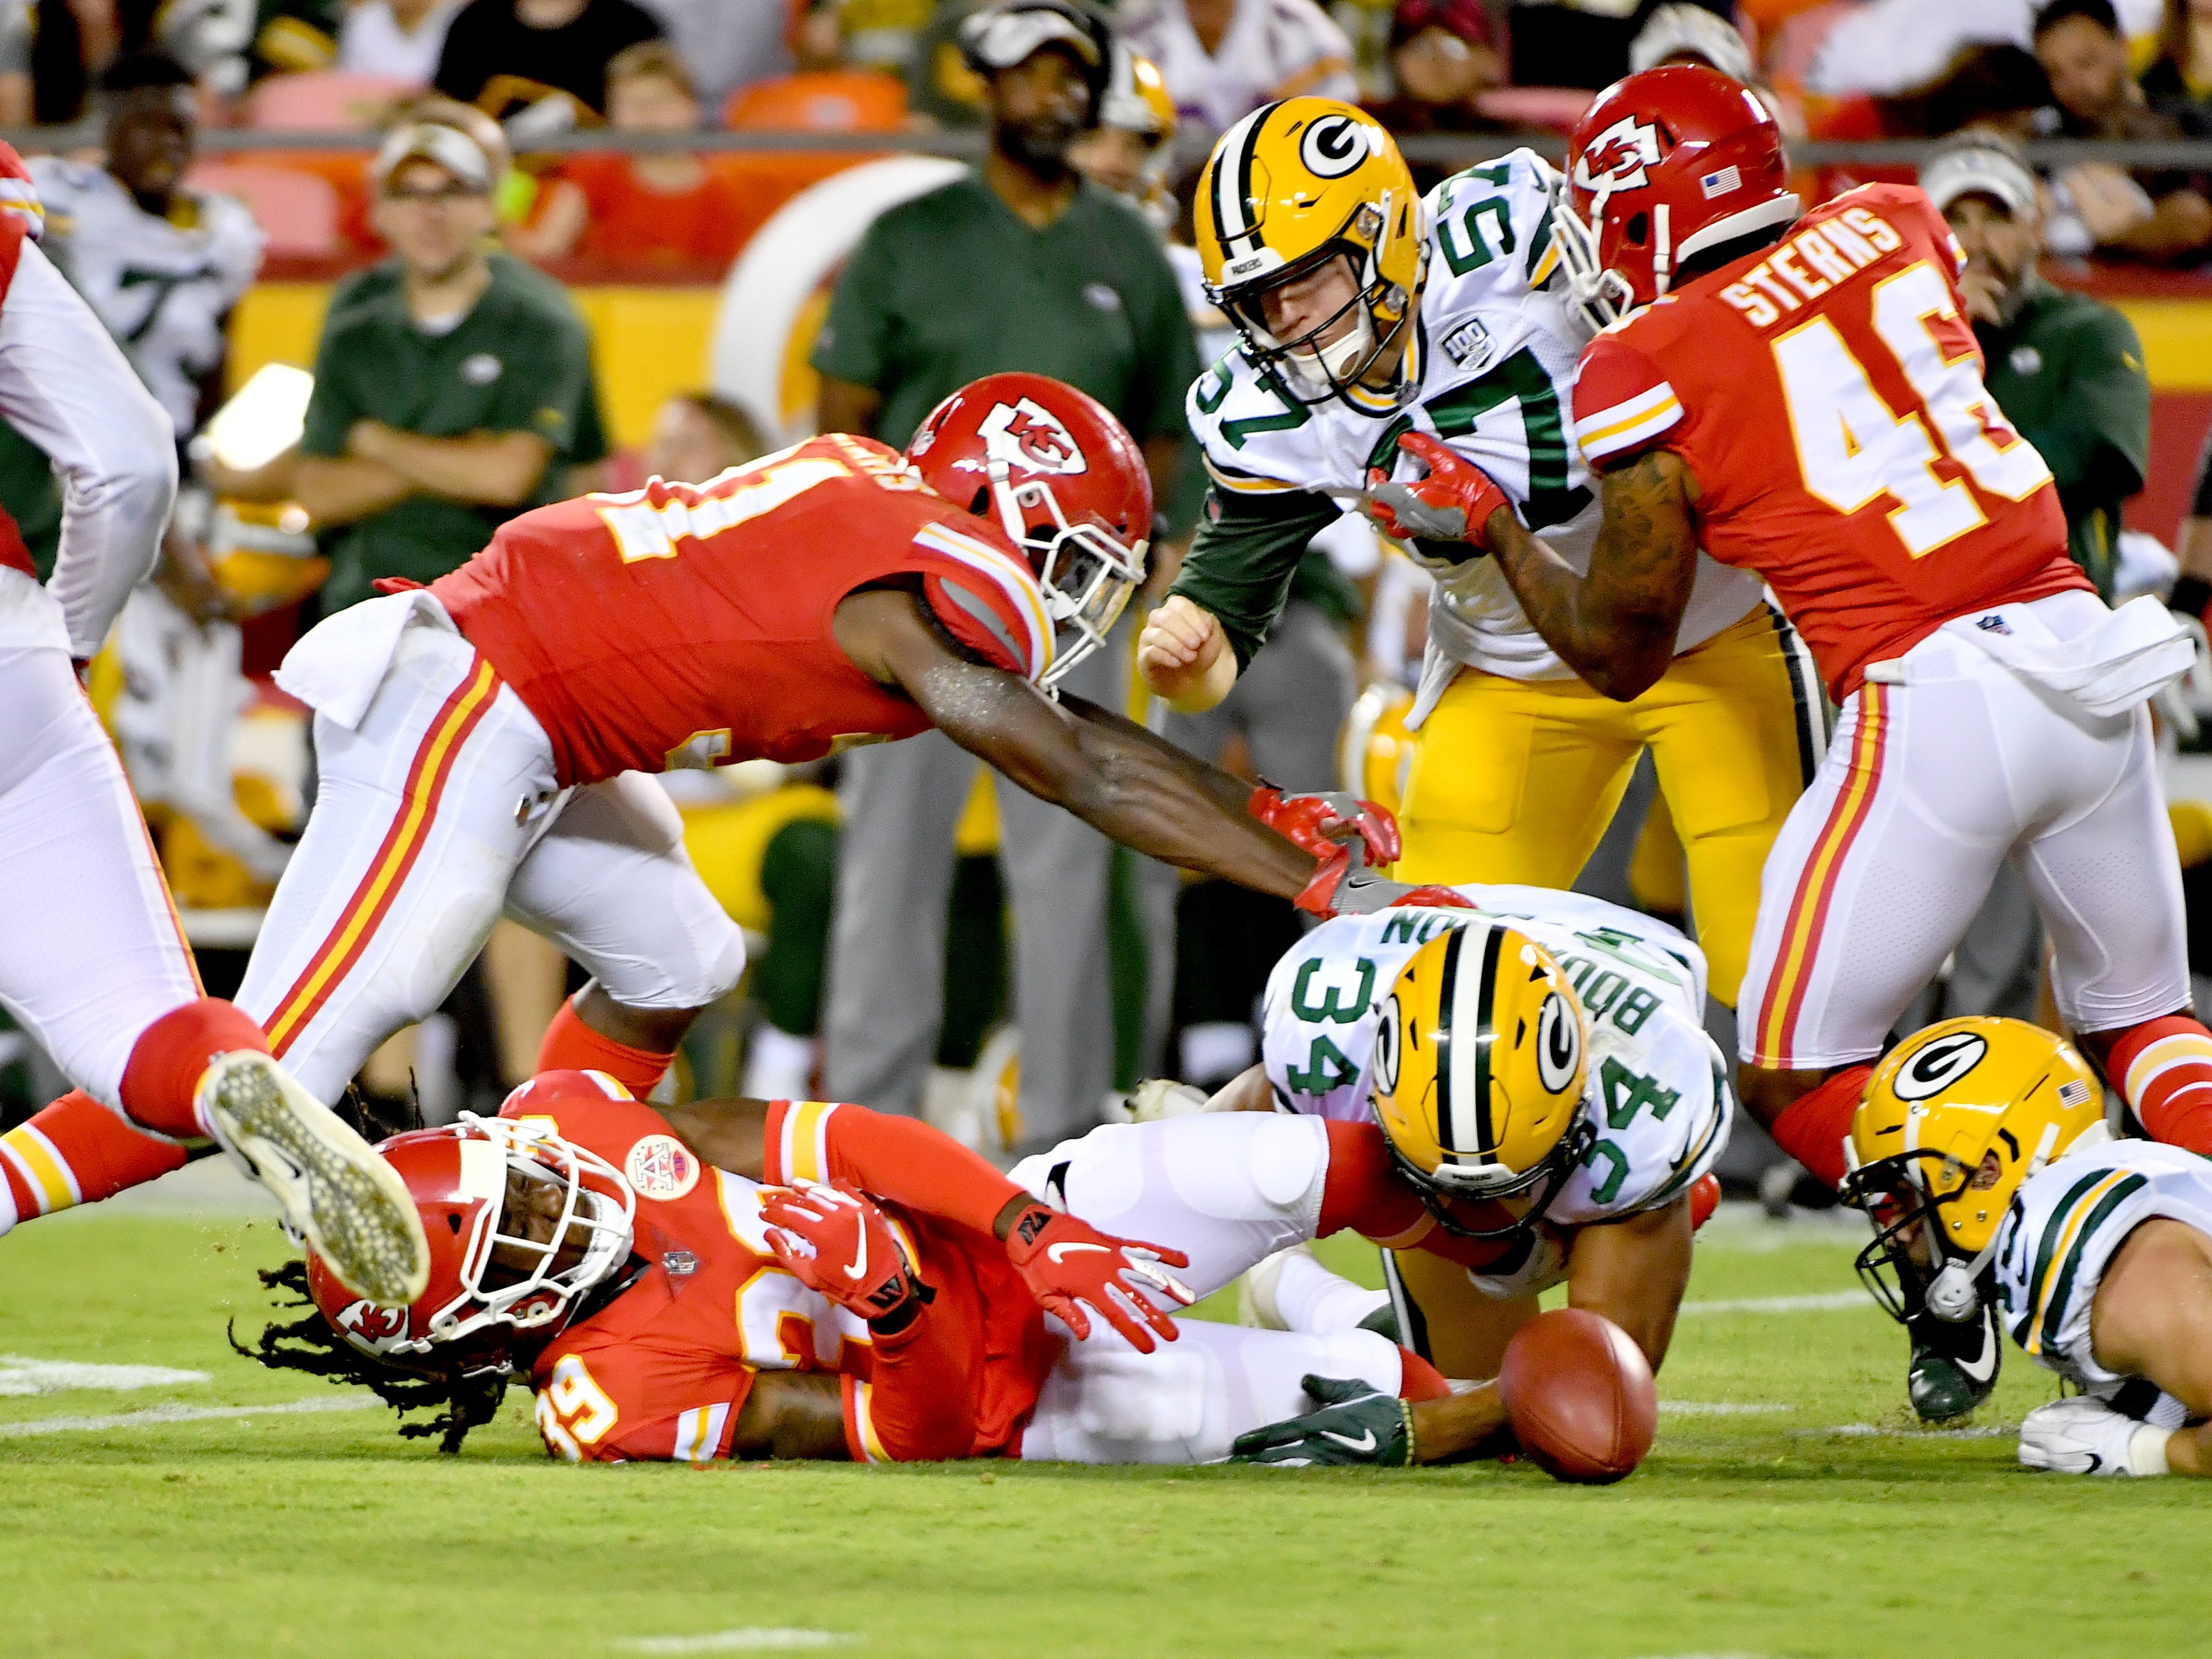 Aug 30, 2018; Kansas City, MO, USA; Kansas City Chiefs defensive back Tremon Smith (39) fumbles the ball as he is tackled by Green Bay Packers linebacker Vince Biegel (45) during the second half at Arrowhead Stadium.